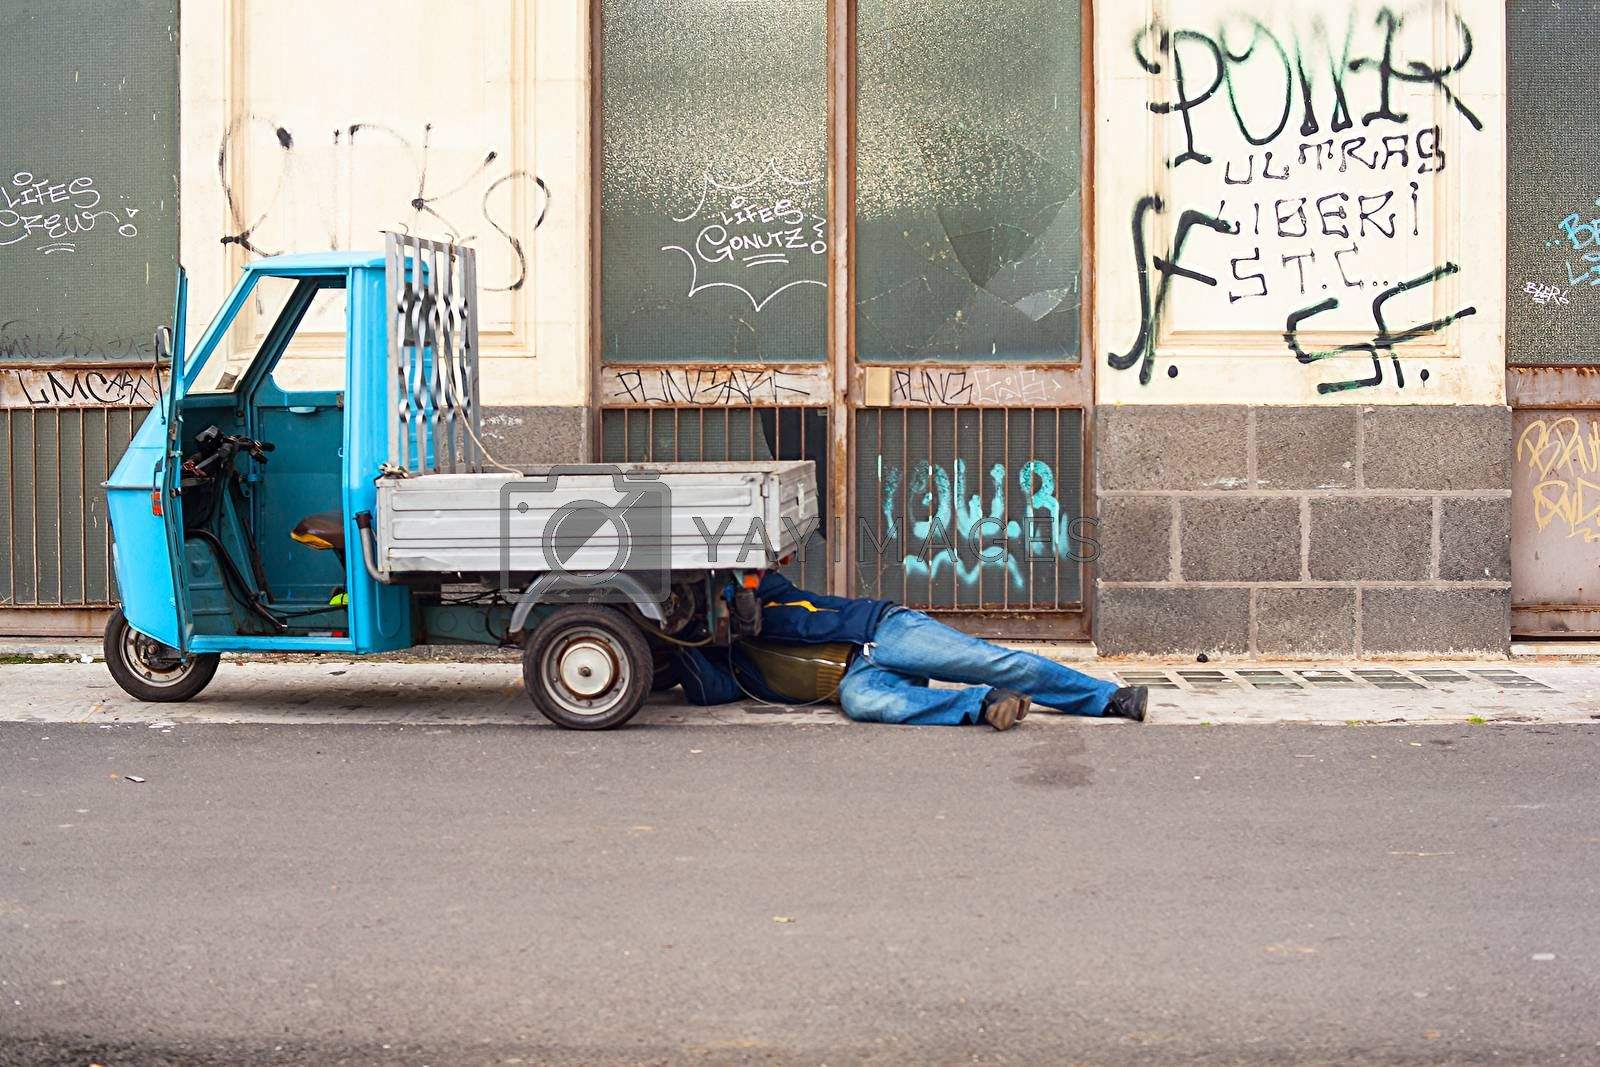 CATANIA, ITALY - DECEMBER, 15: Man under the hood of his three-wheeled on December 15, 2014